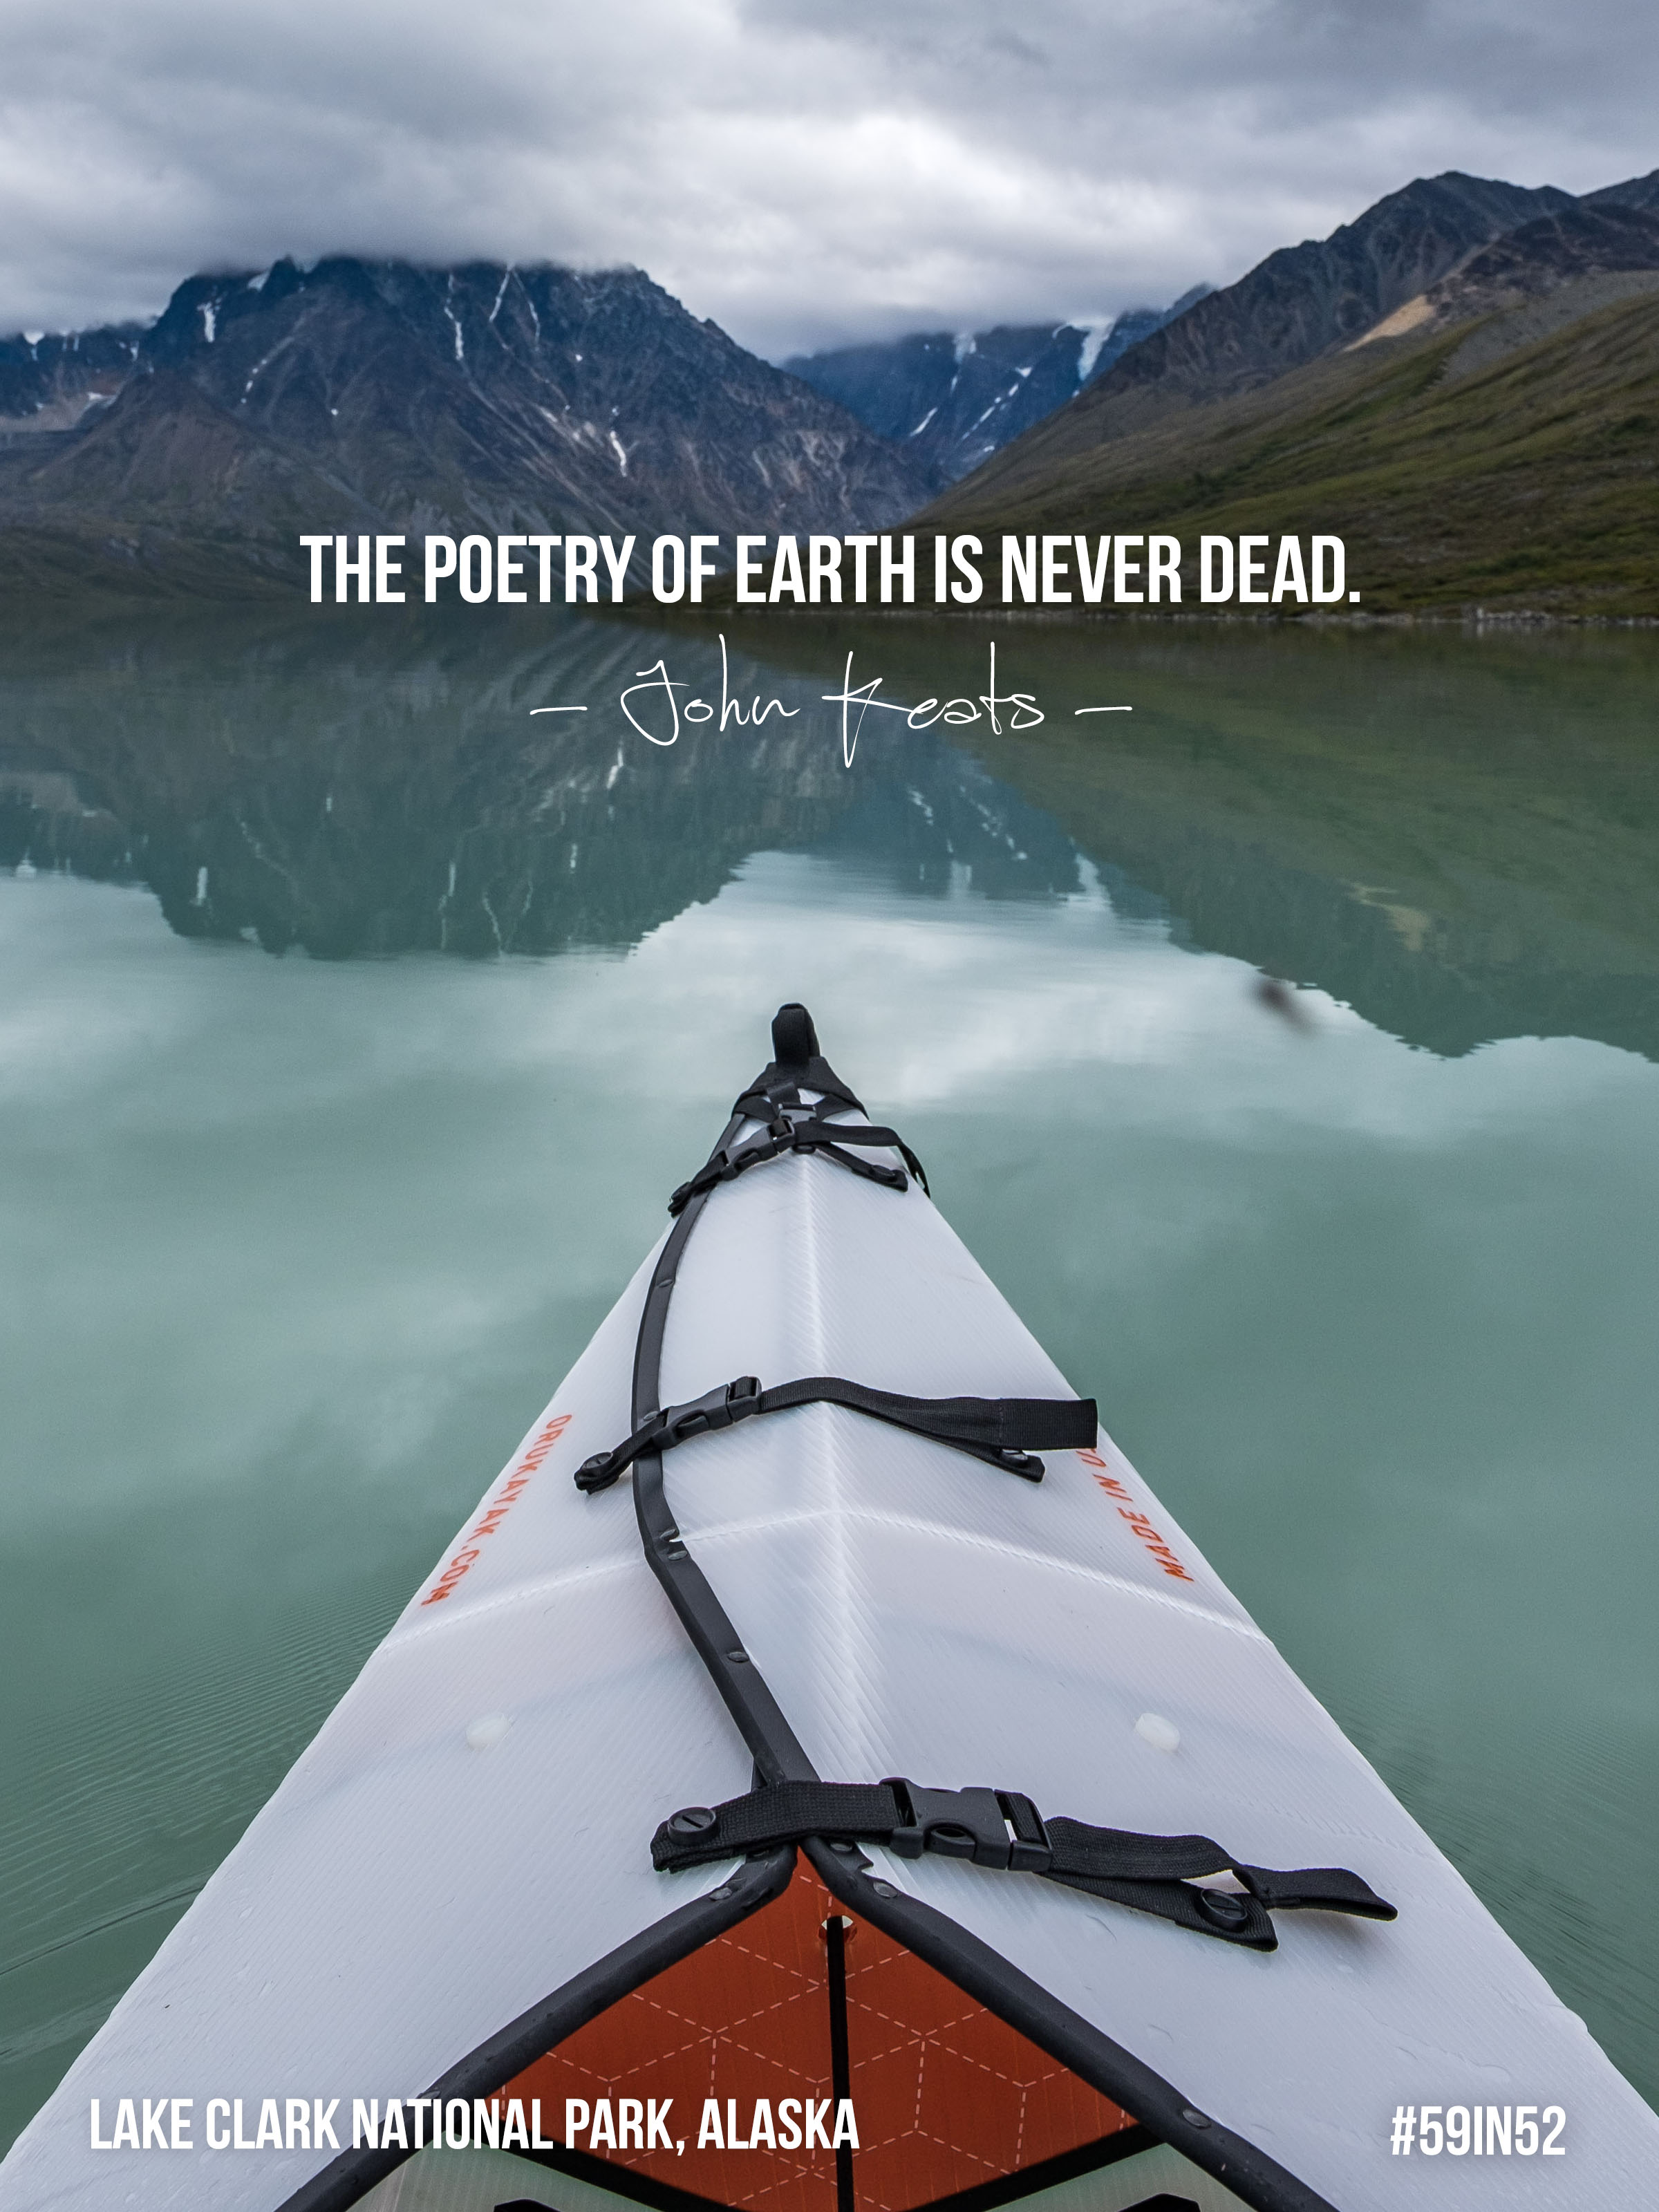 """The poetry of Earth is never dead."" - John Keats"